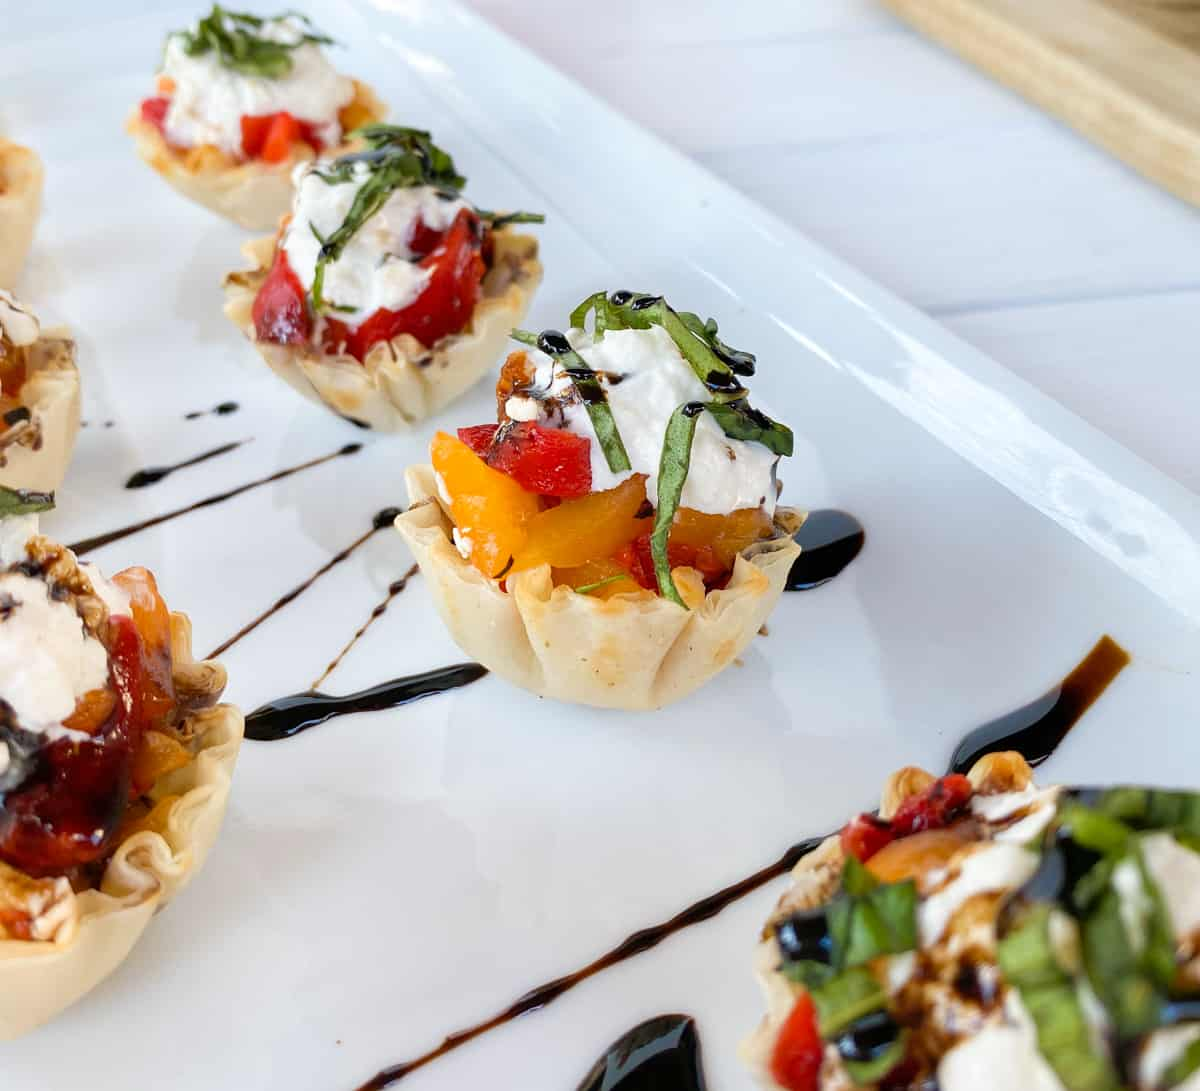 phyllo shells stuffed on a plate topped with balsamic vinegar.